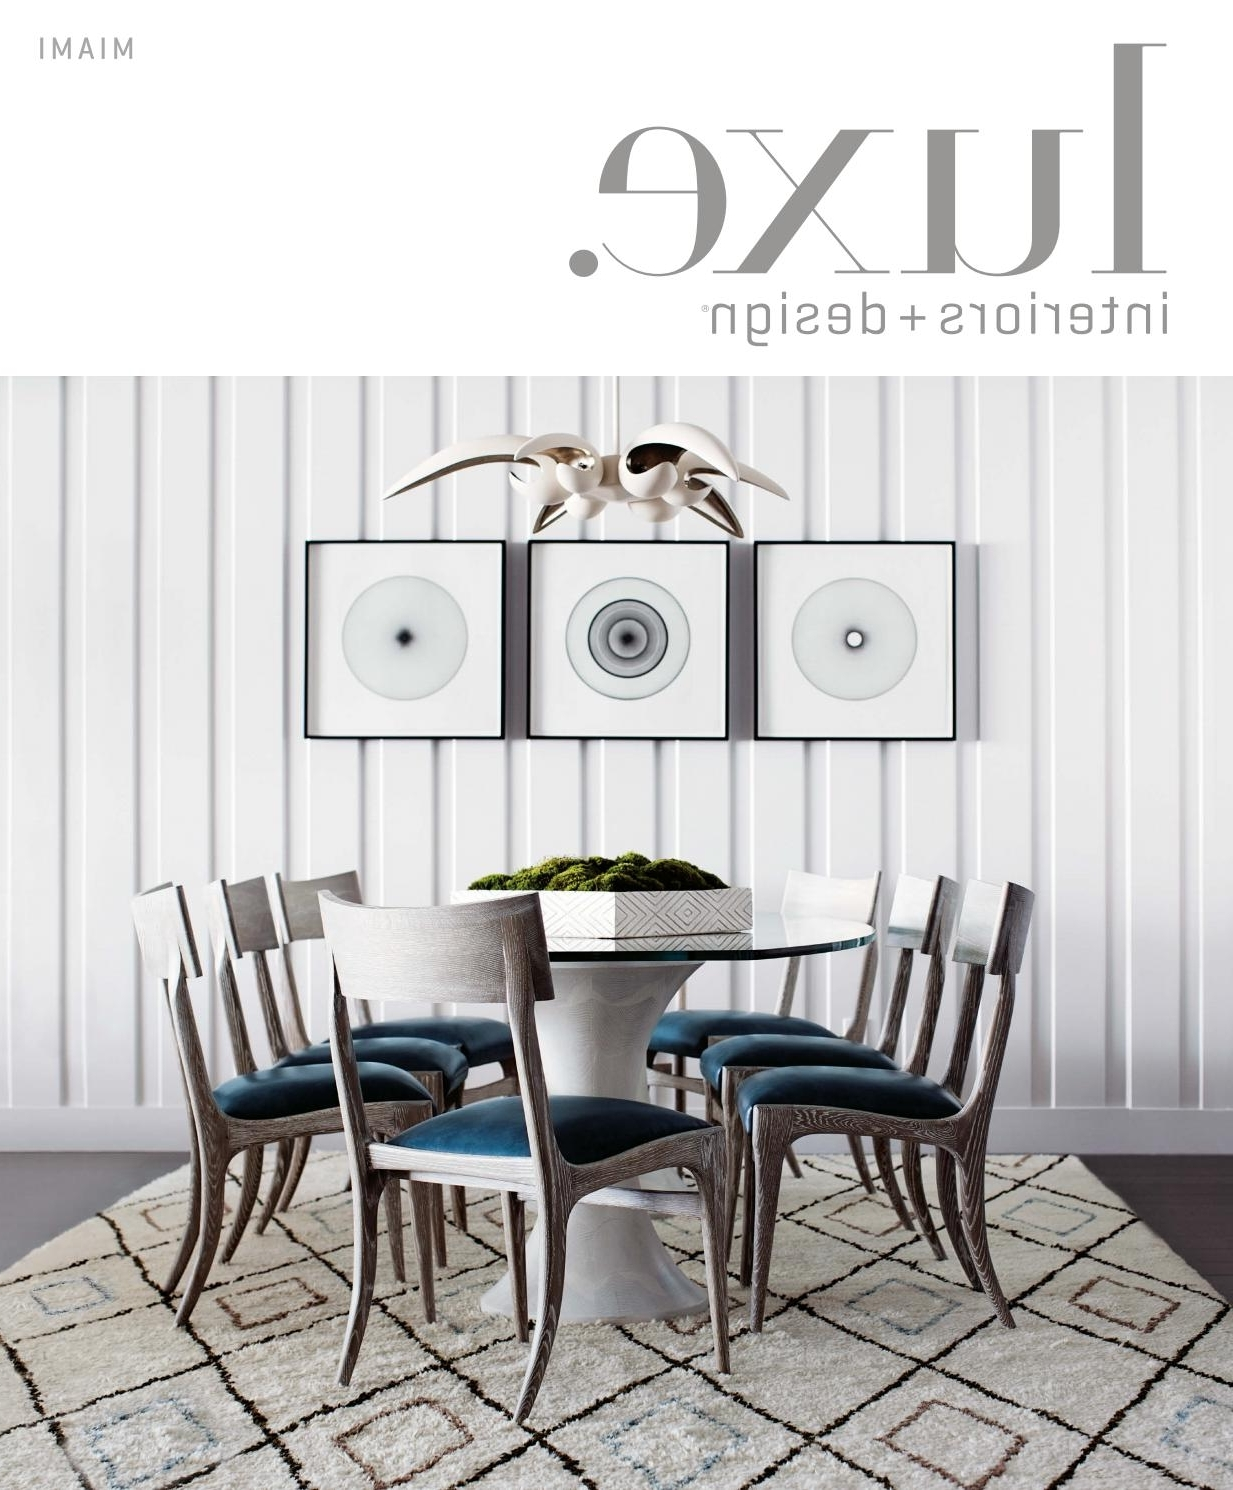 Newest Luxe Magazine July 2016 Miamisandow® - Issuu regarding Palazzo 6 Piece Dining Sets With Pearson Grey Side Chairs